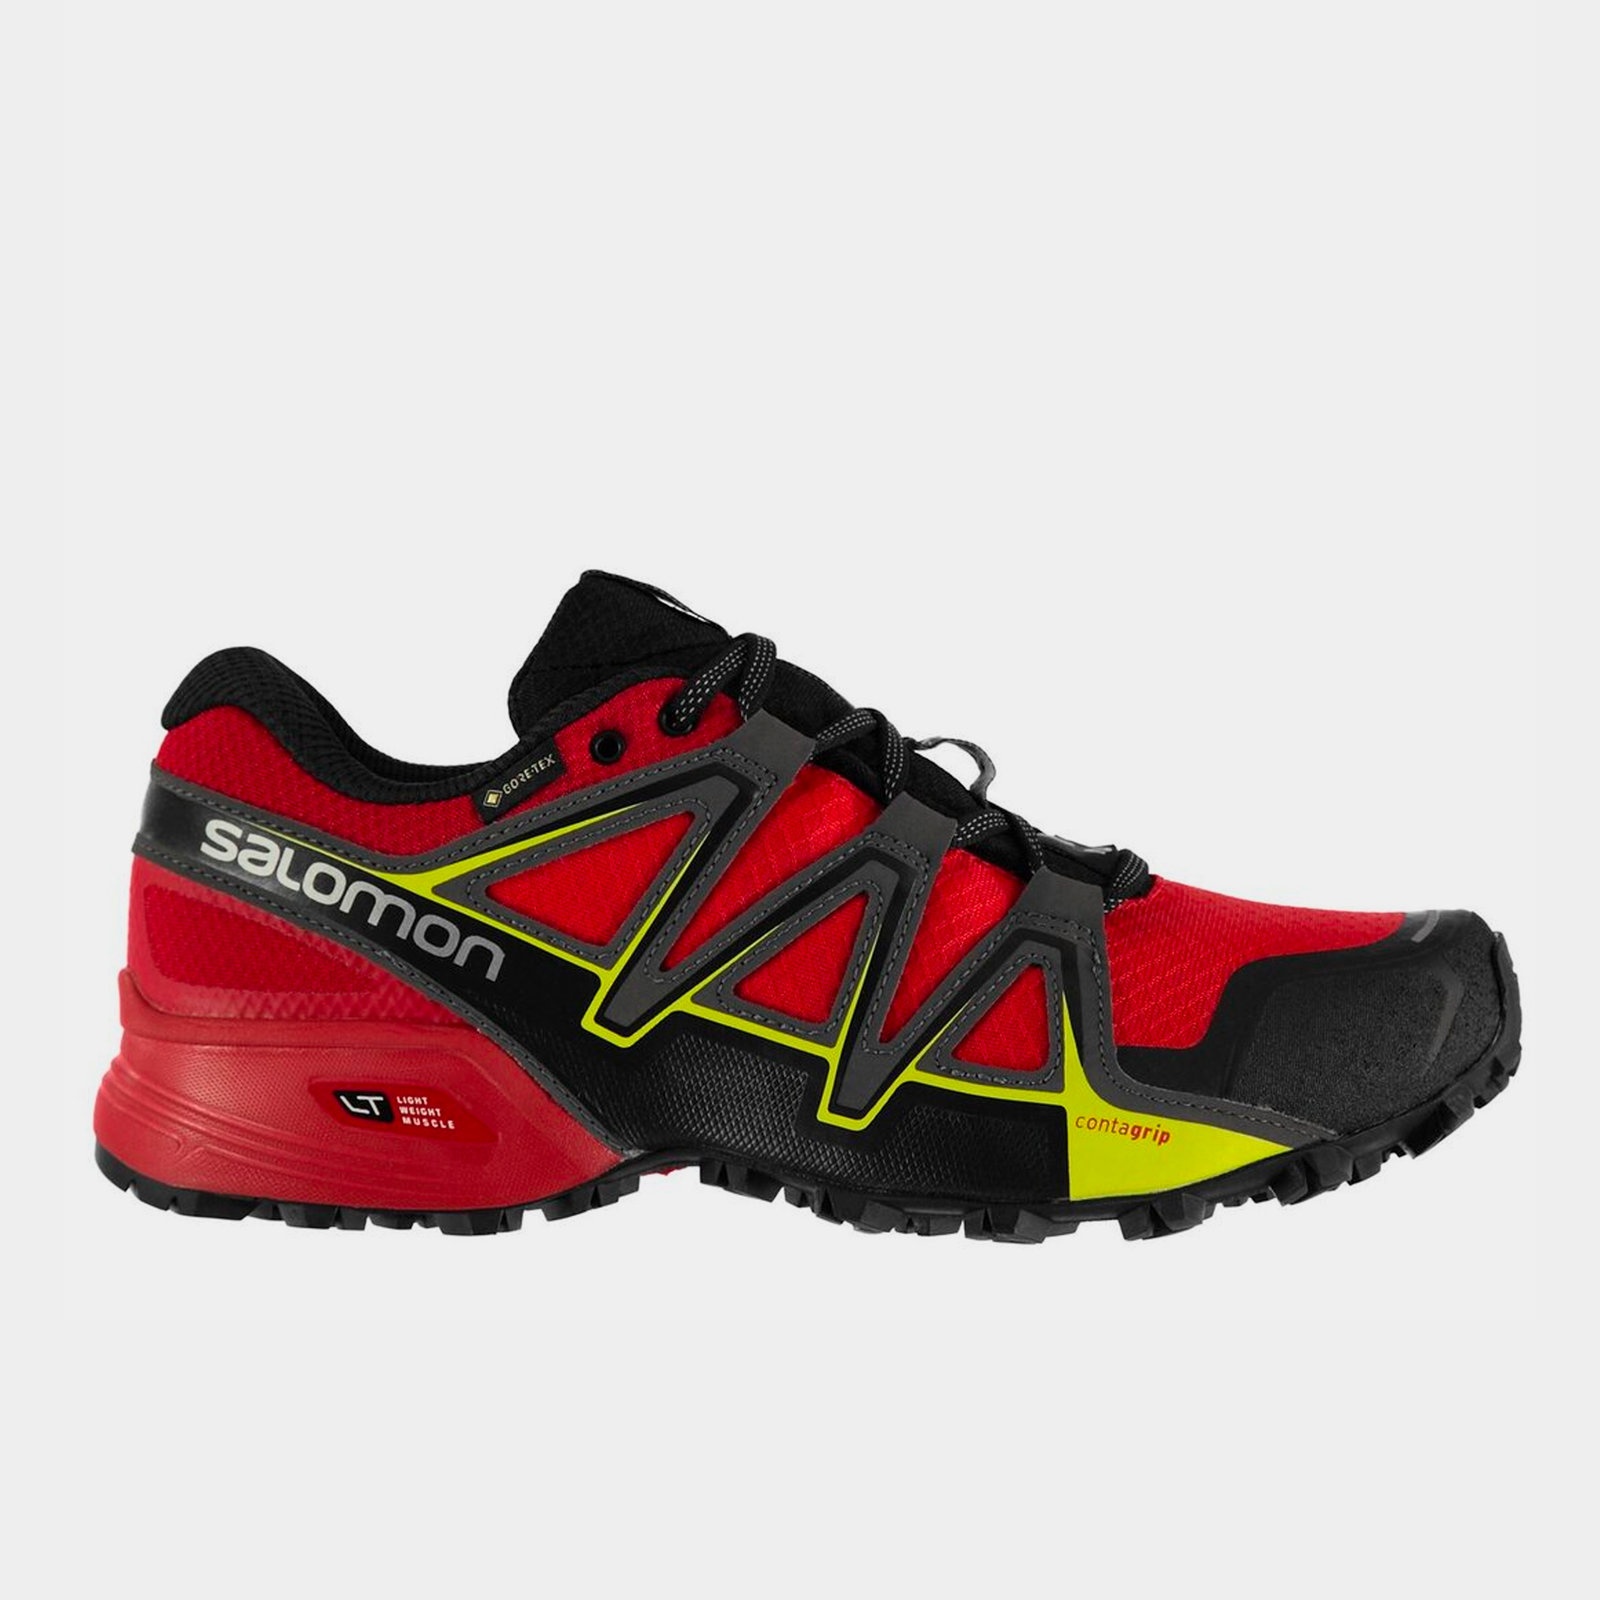 salomon trail running shoes warranty turkey